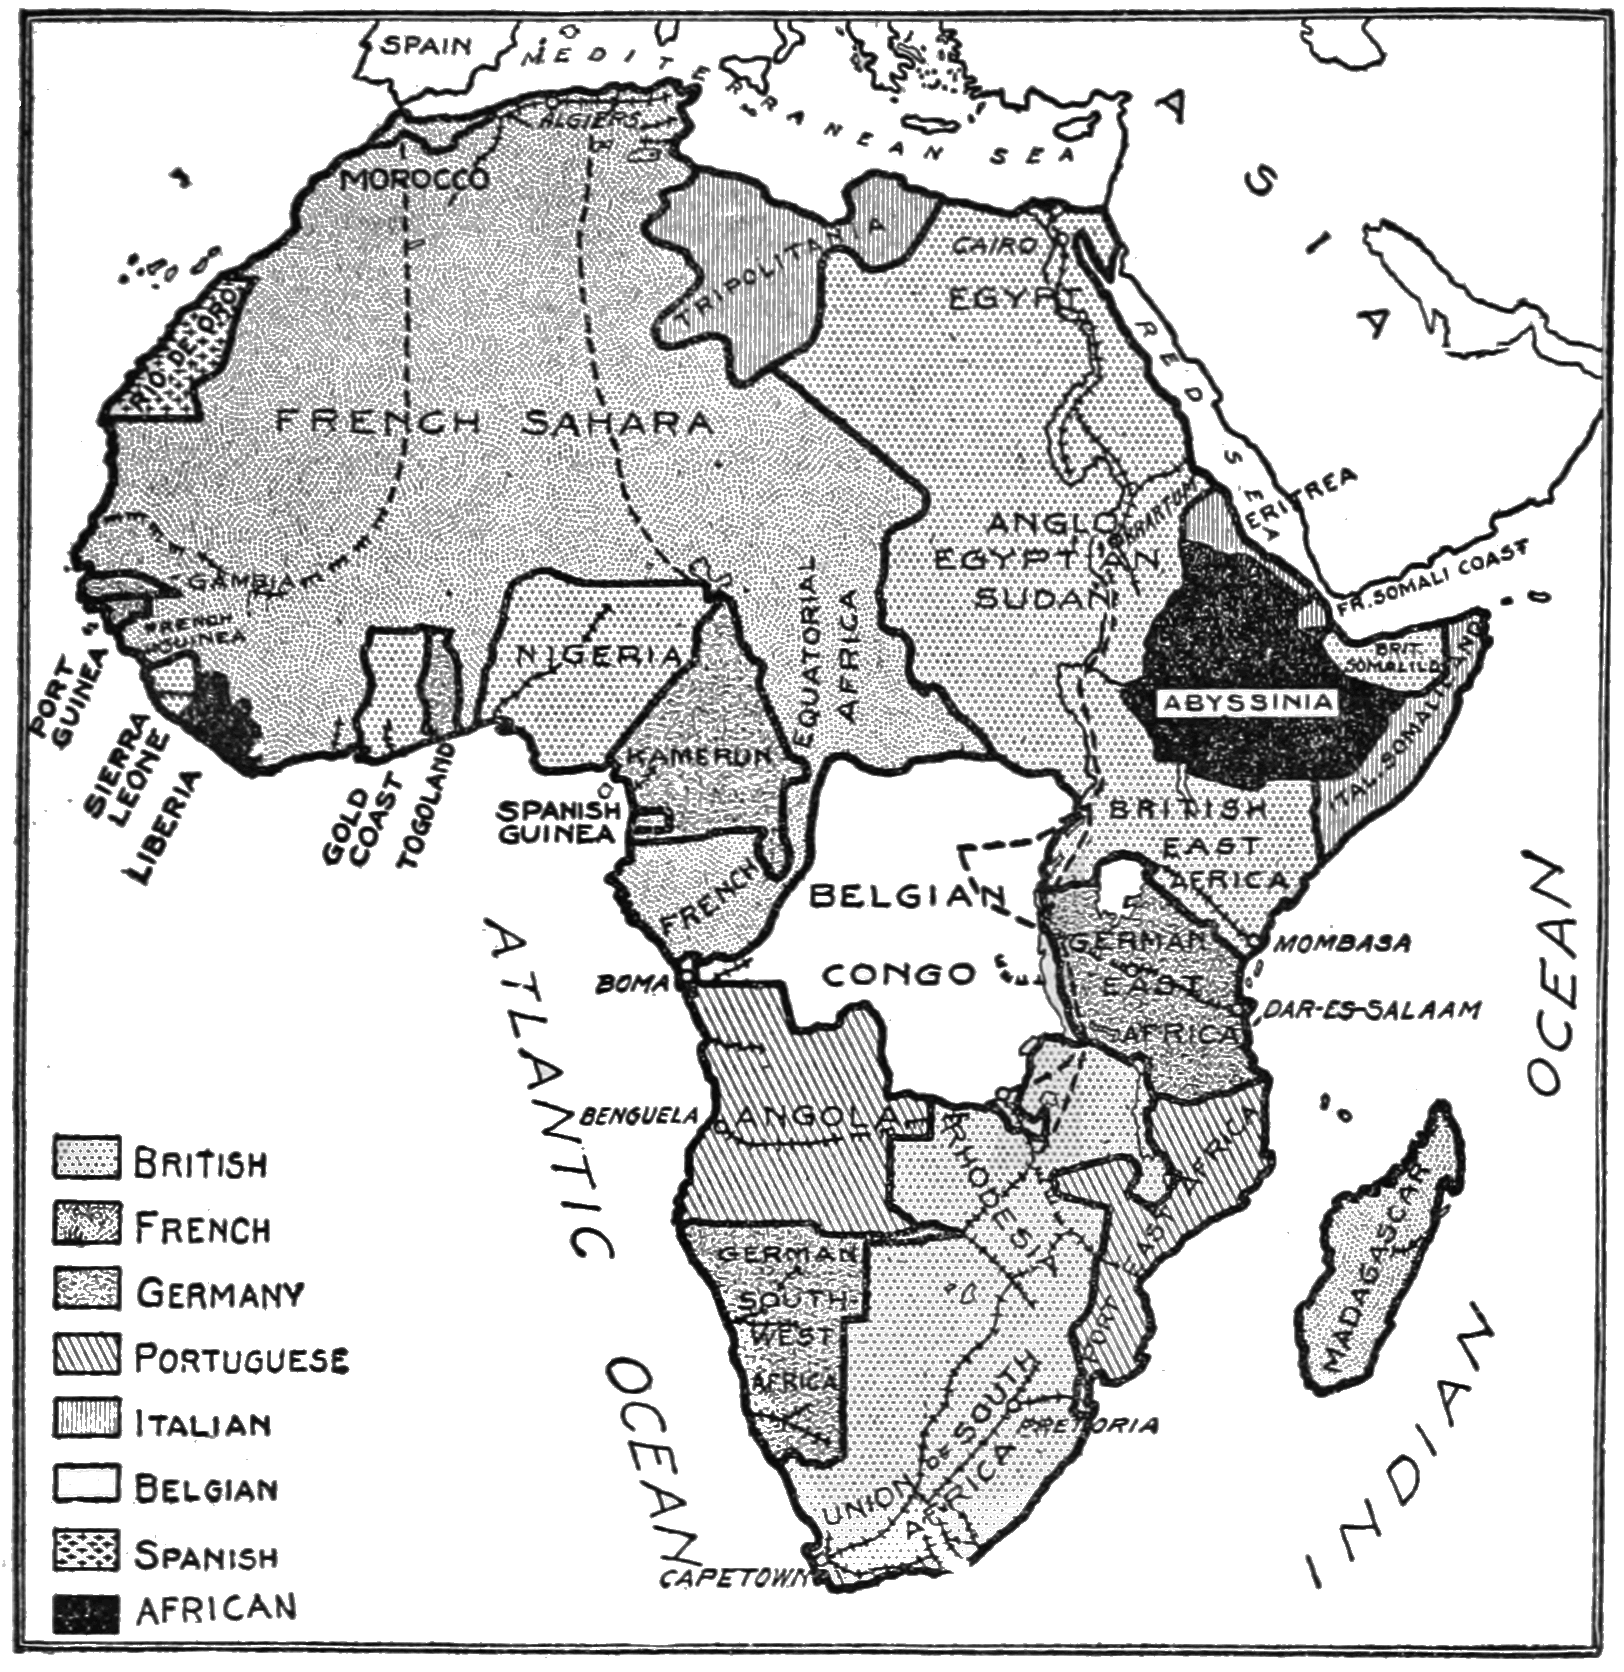 PSM V85 D315 Map of european possessions in africa.png